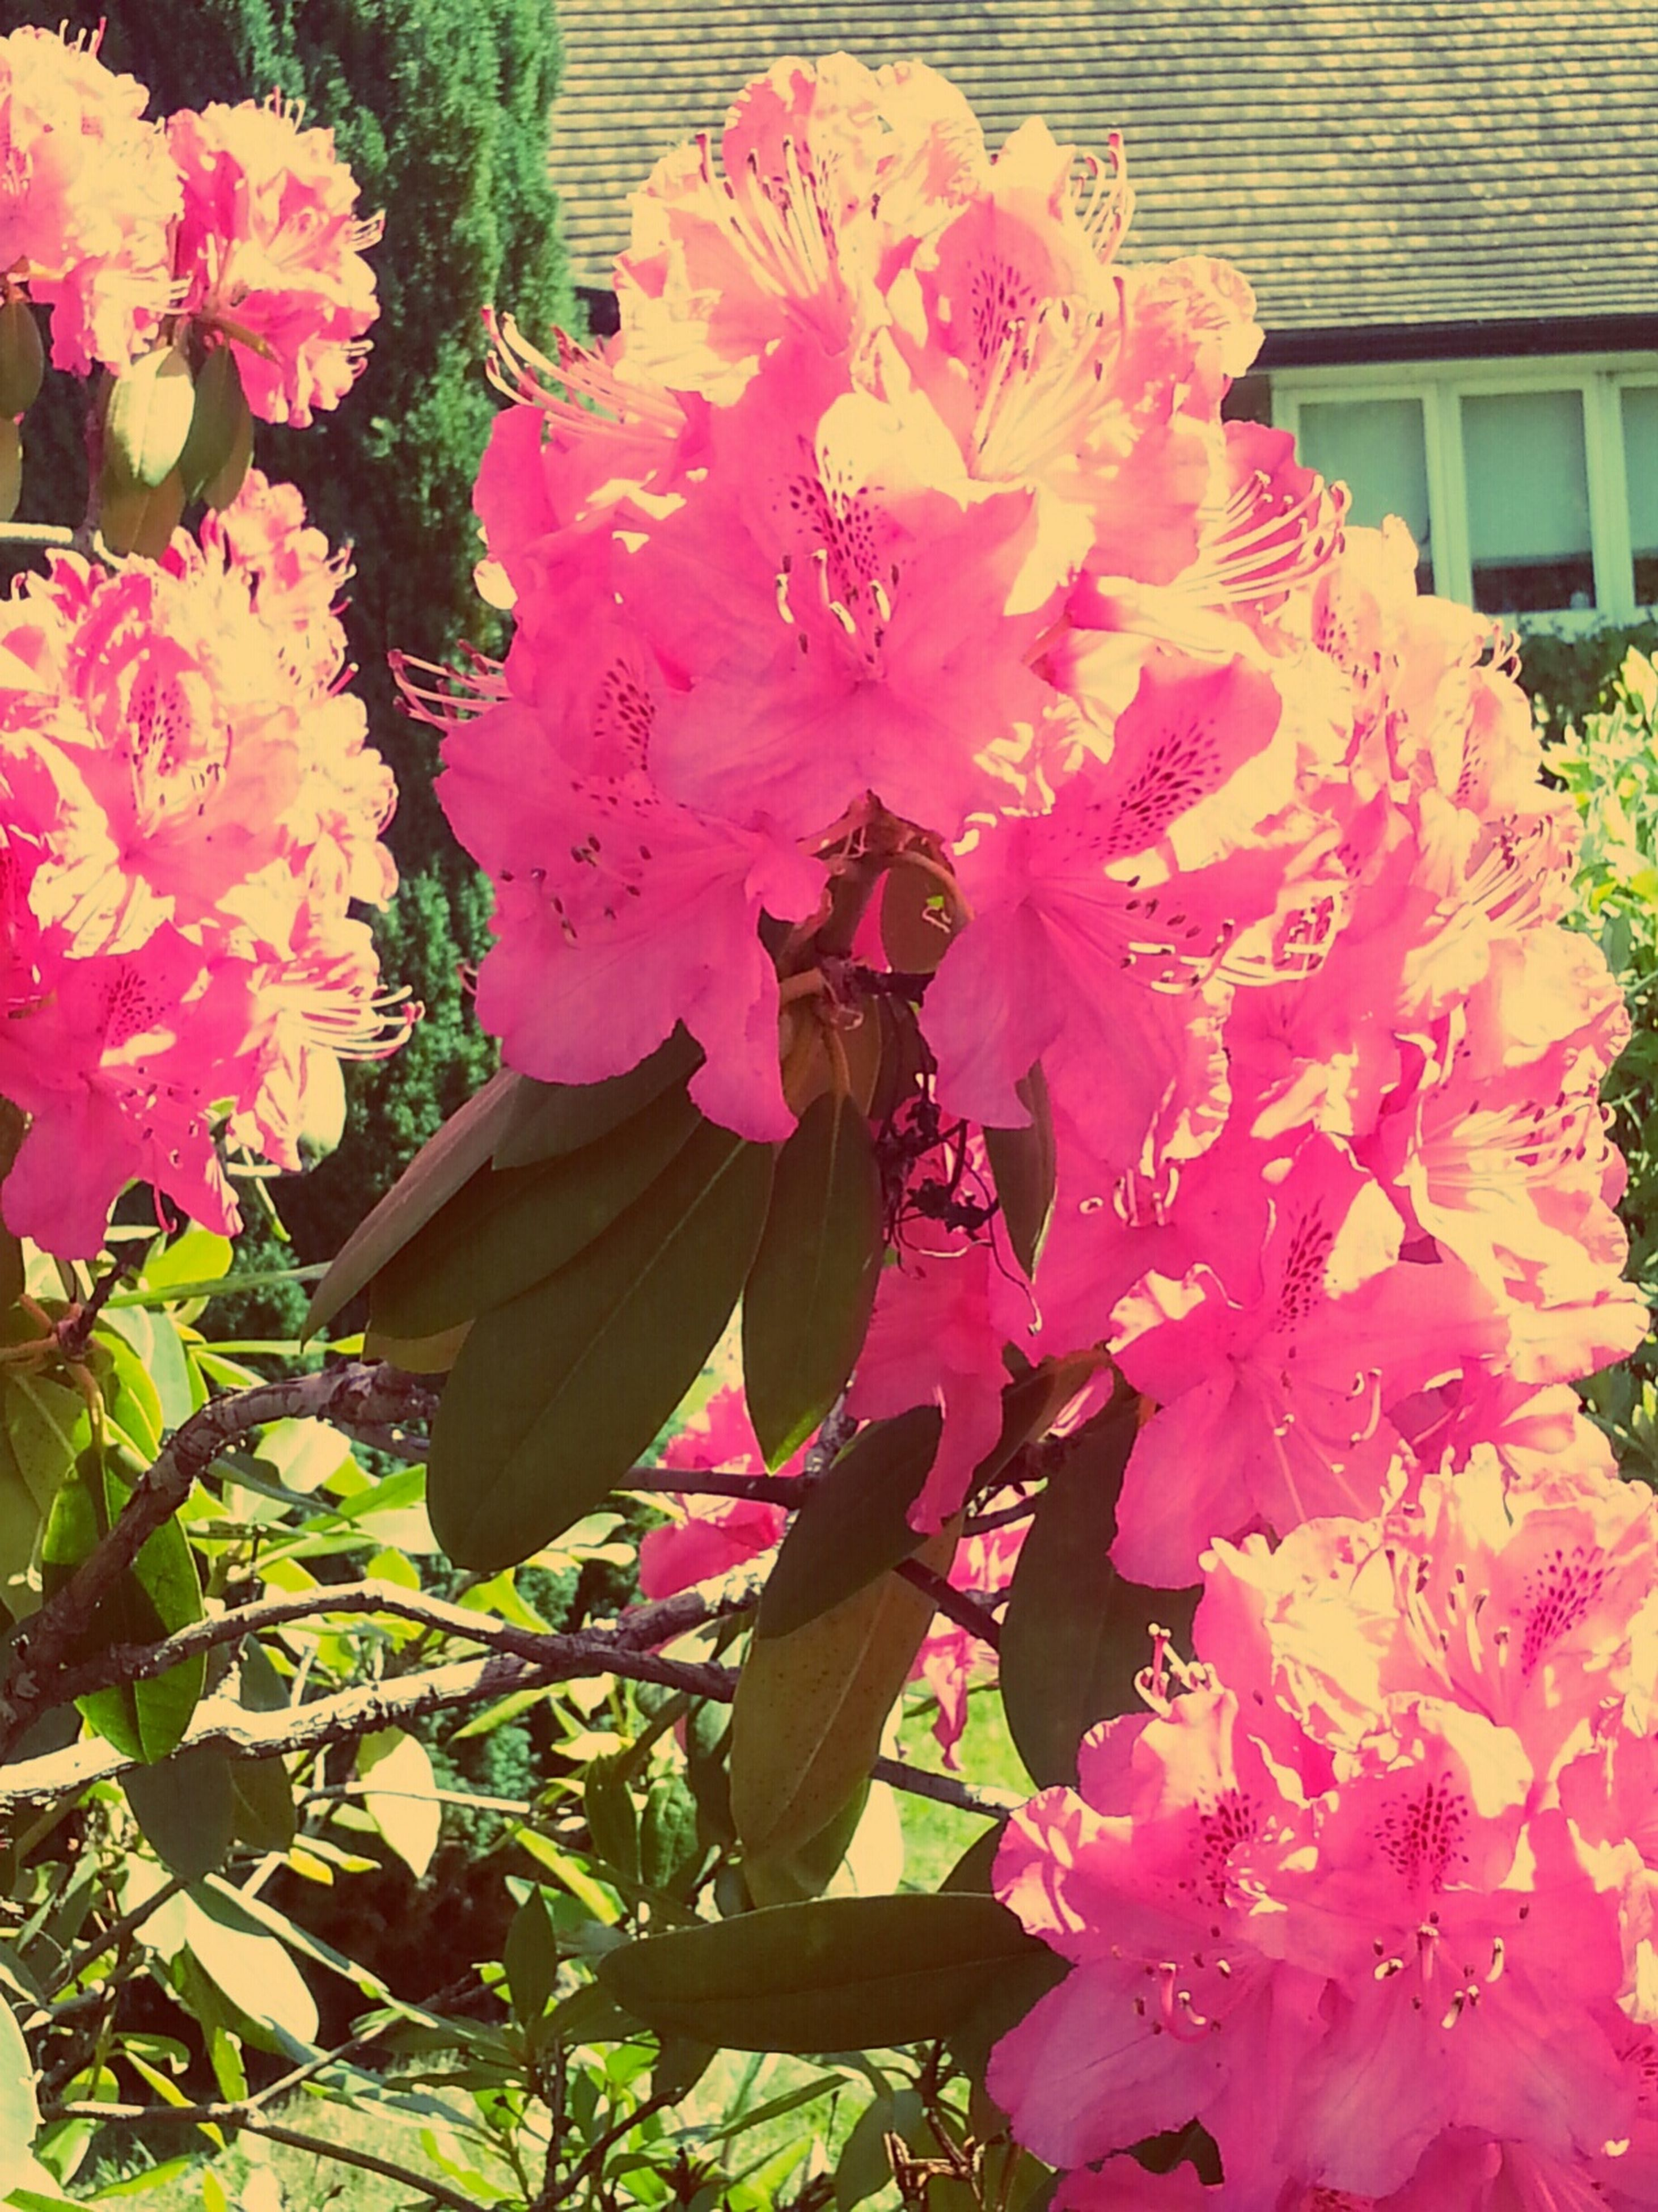 flower, freshness, petal, fragility, pink color, growth, beauty in nature, flower head, blooming, nature, plant, pink, in bloom, close-up, blossom, leaf, park - man made space, day, outdoors, no people